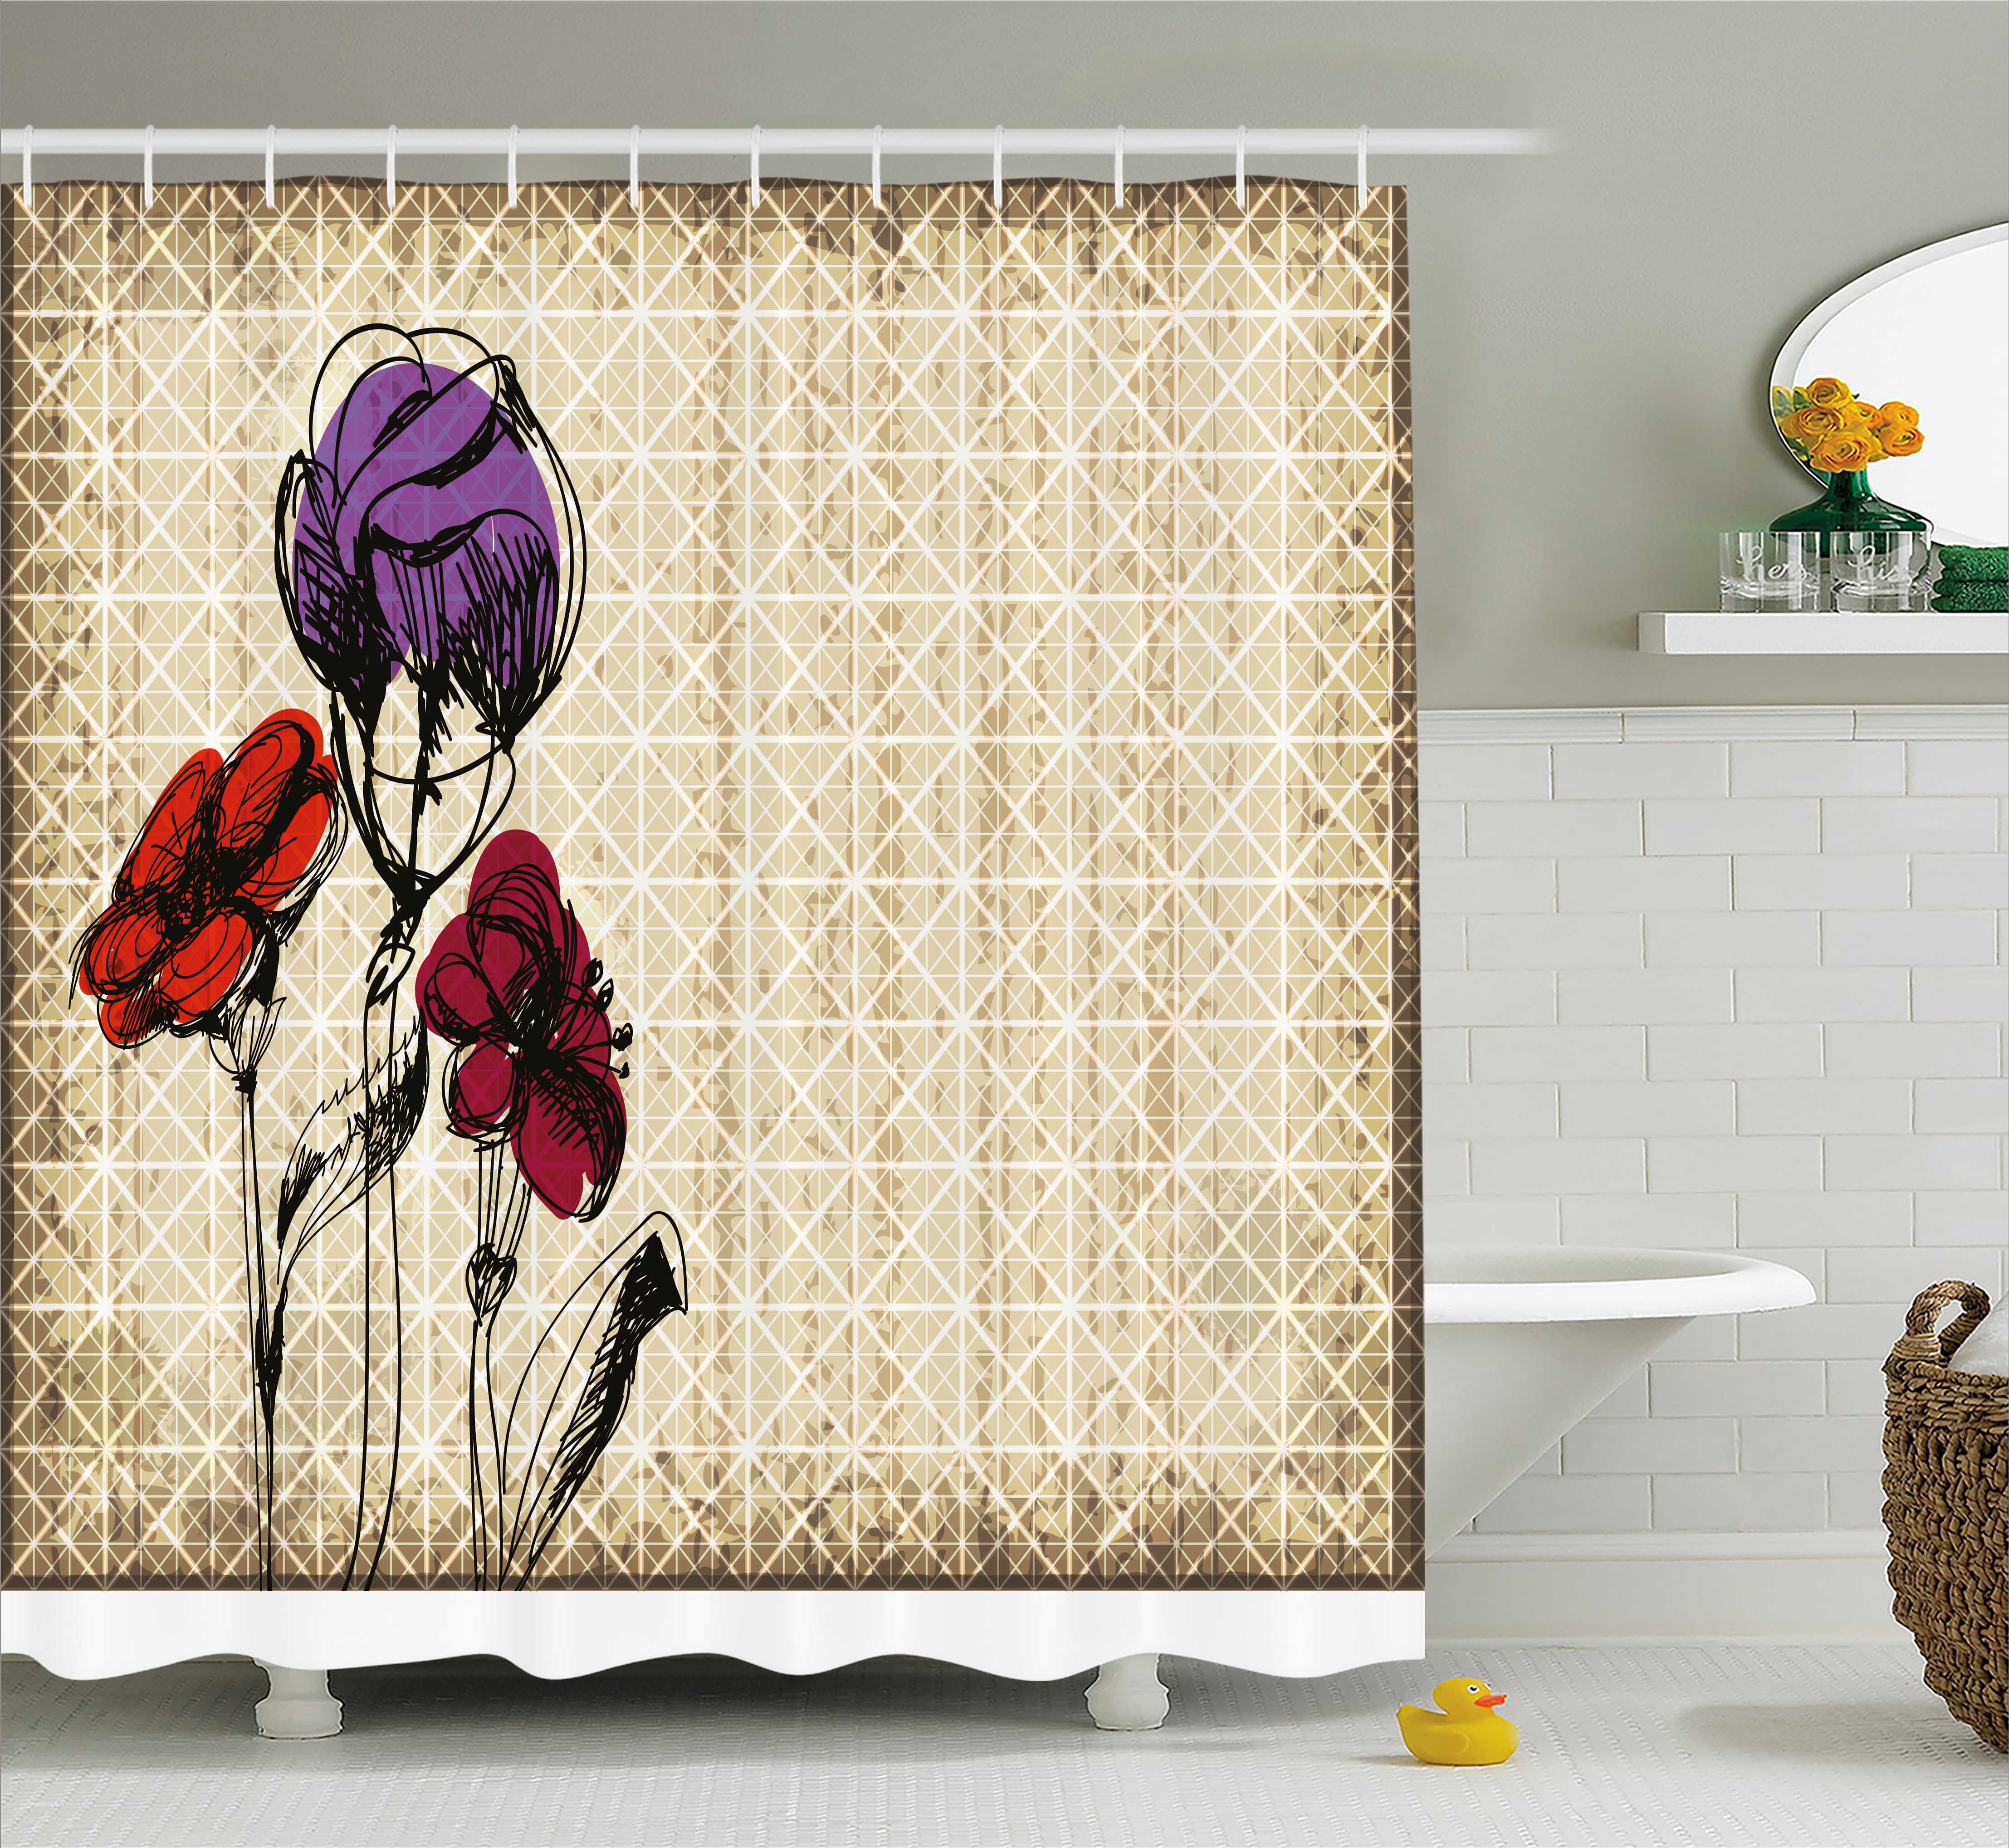 Floral Shower Curtain, Sketchy Flower Petals with Grunge Effects Blooms Florets Illustration, Fabric Bathroom Set with Hooks, 69W X 75L Inches Long, Tan Maroon Purple Red, by Ambesonne